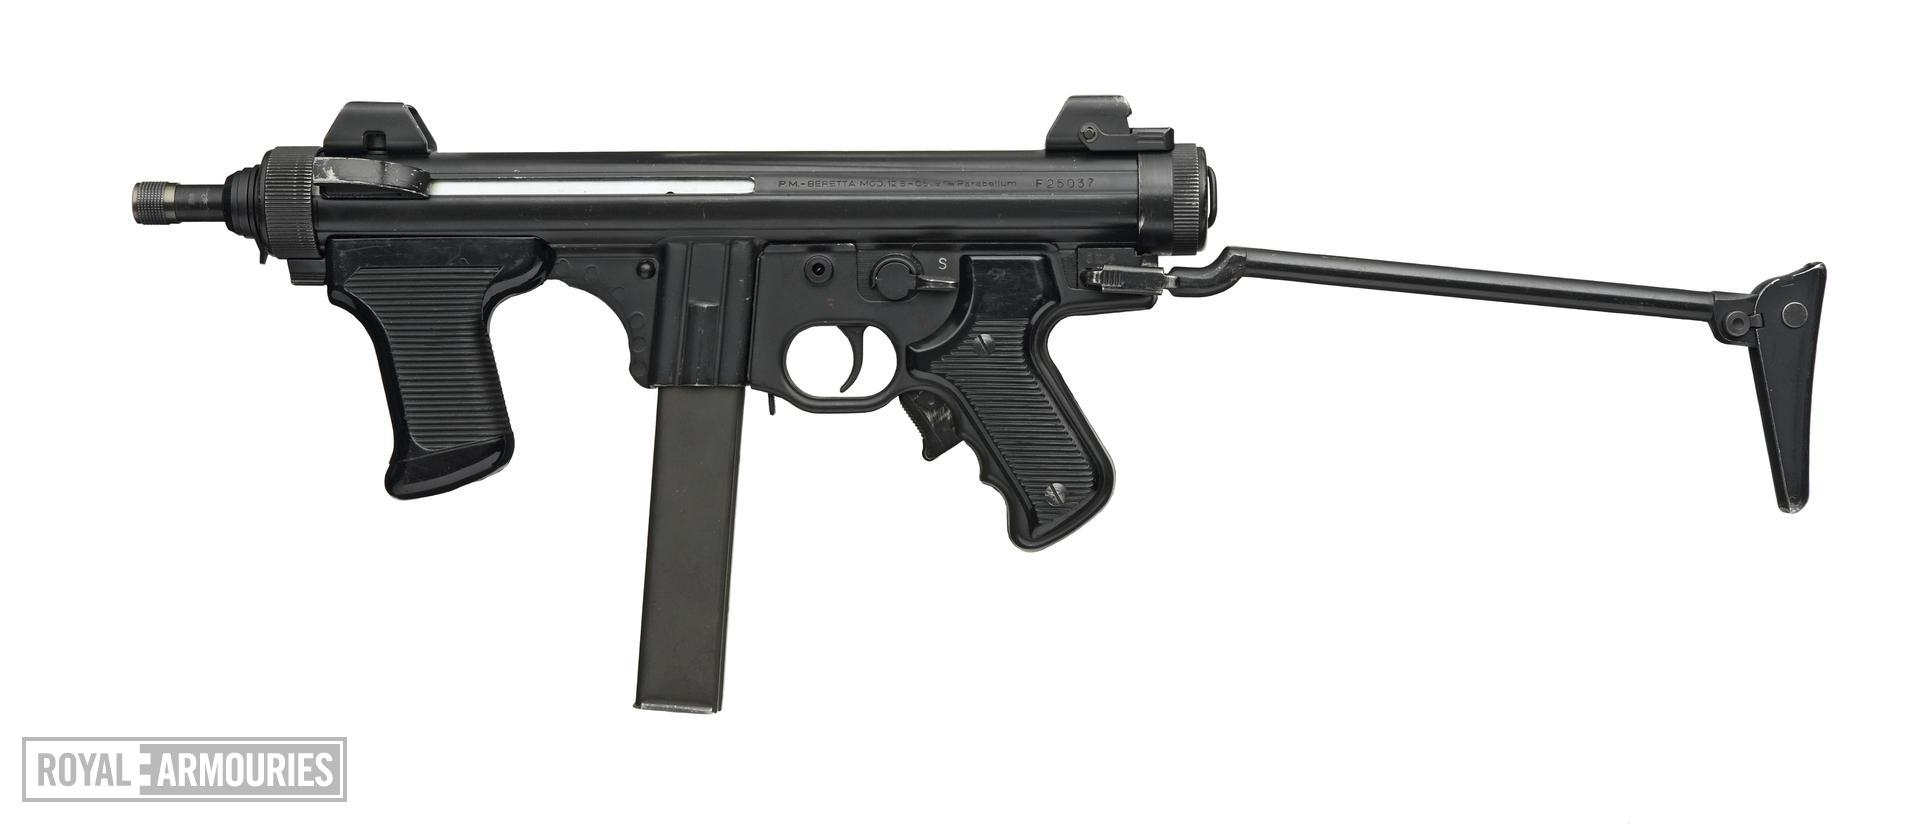 Centrefire automatic submachine gun - Beretta Model 12S with silencer